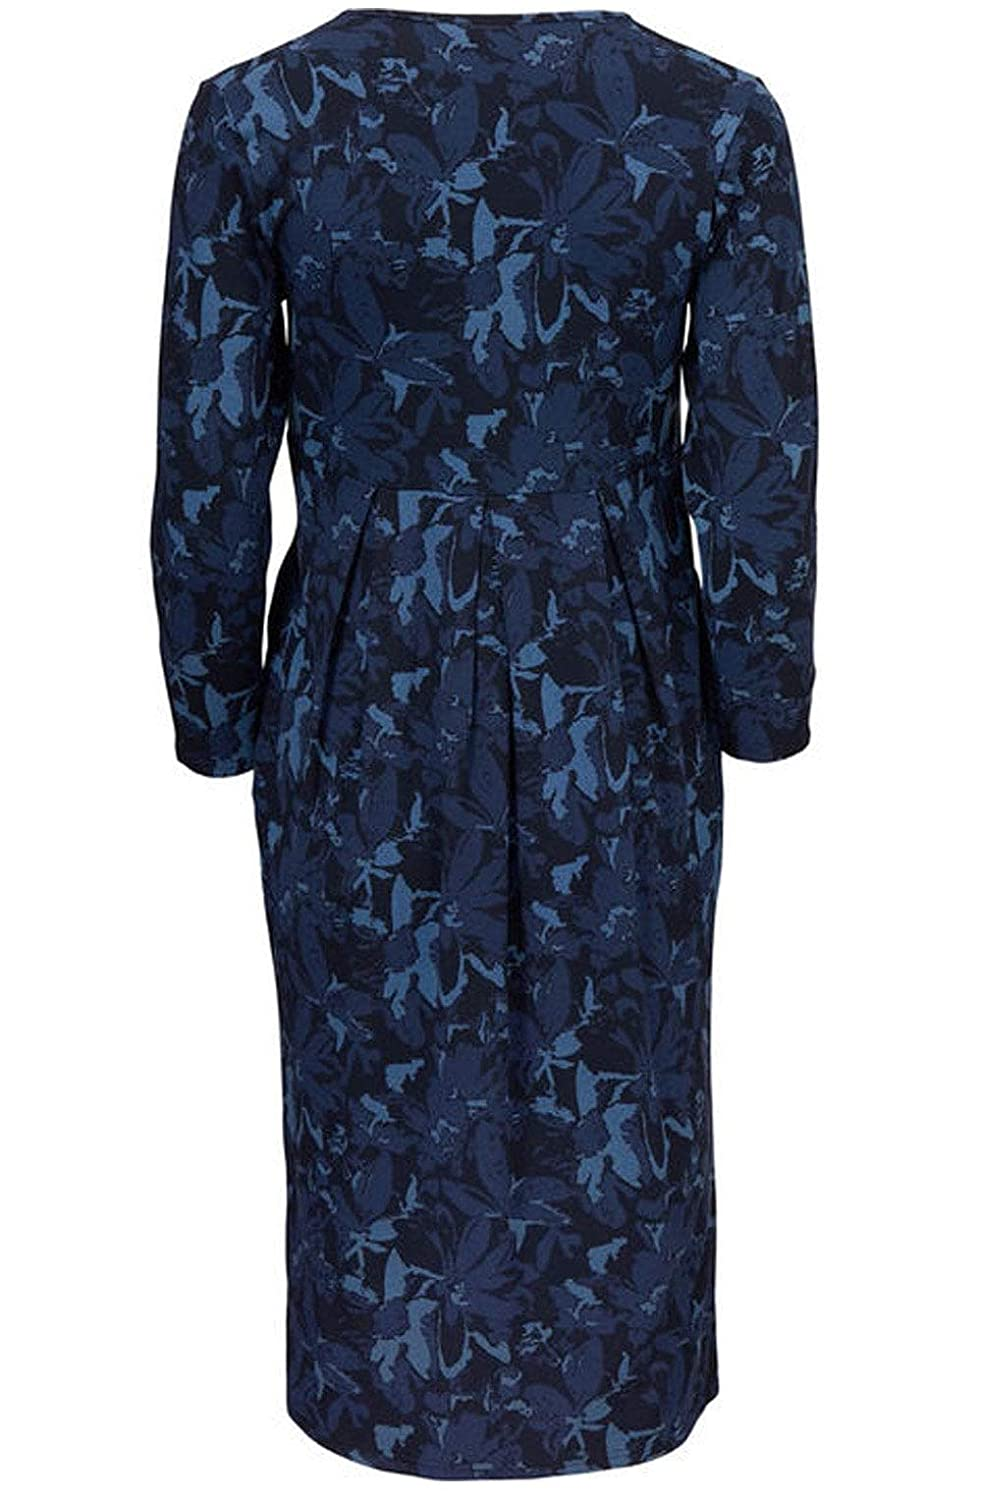 cf0d6c99b6f Masai Clothing - Ninet Abstract Floral Dress, Sapphire Org, XXLarge(UK18):  Amazon.co.uk: Clothing